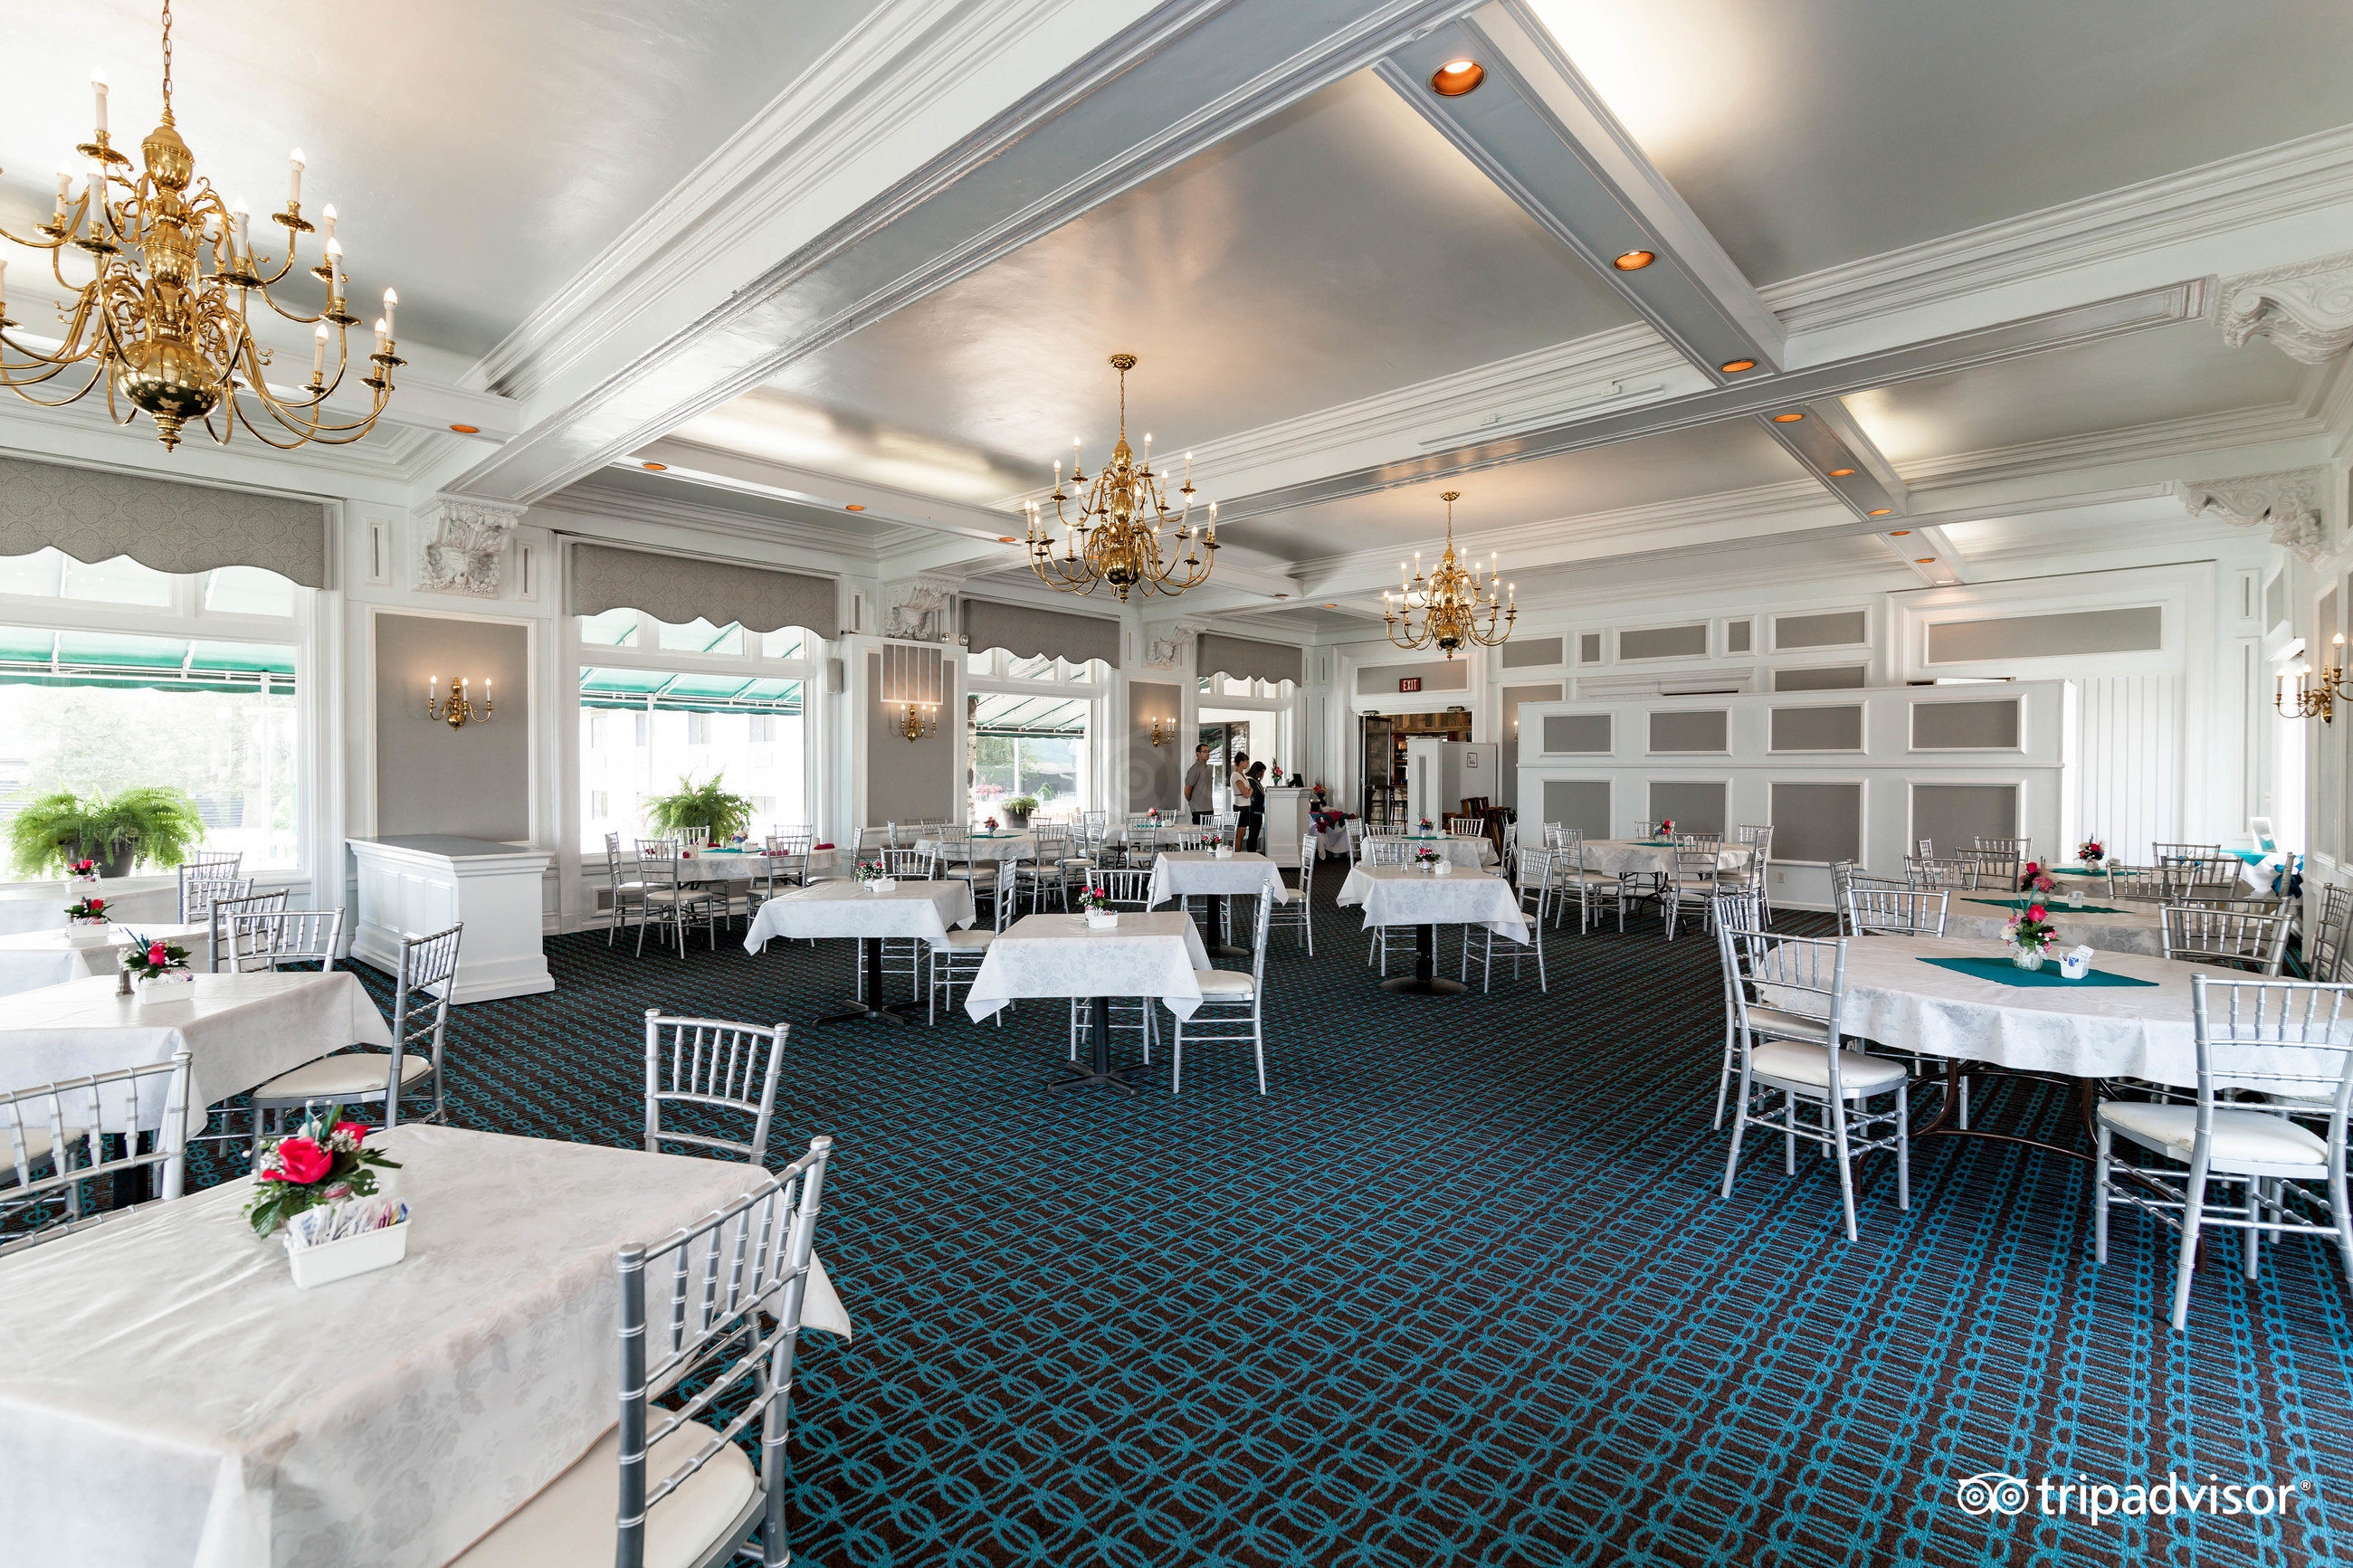 Fort William Henry Hotel & Conference Center Lake George NY